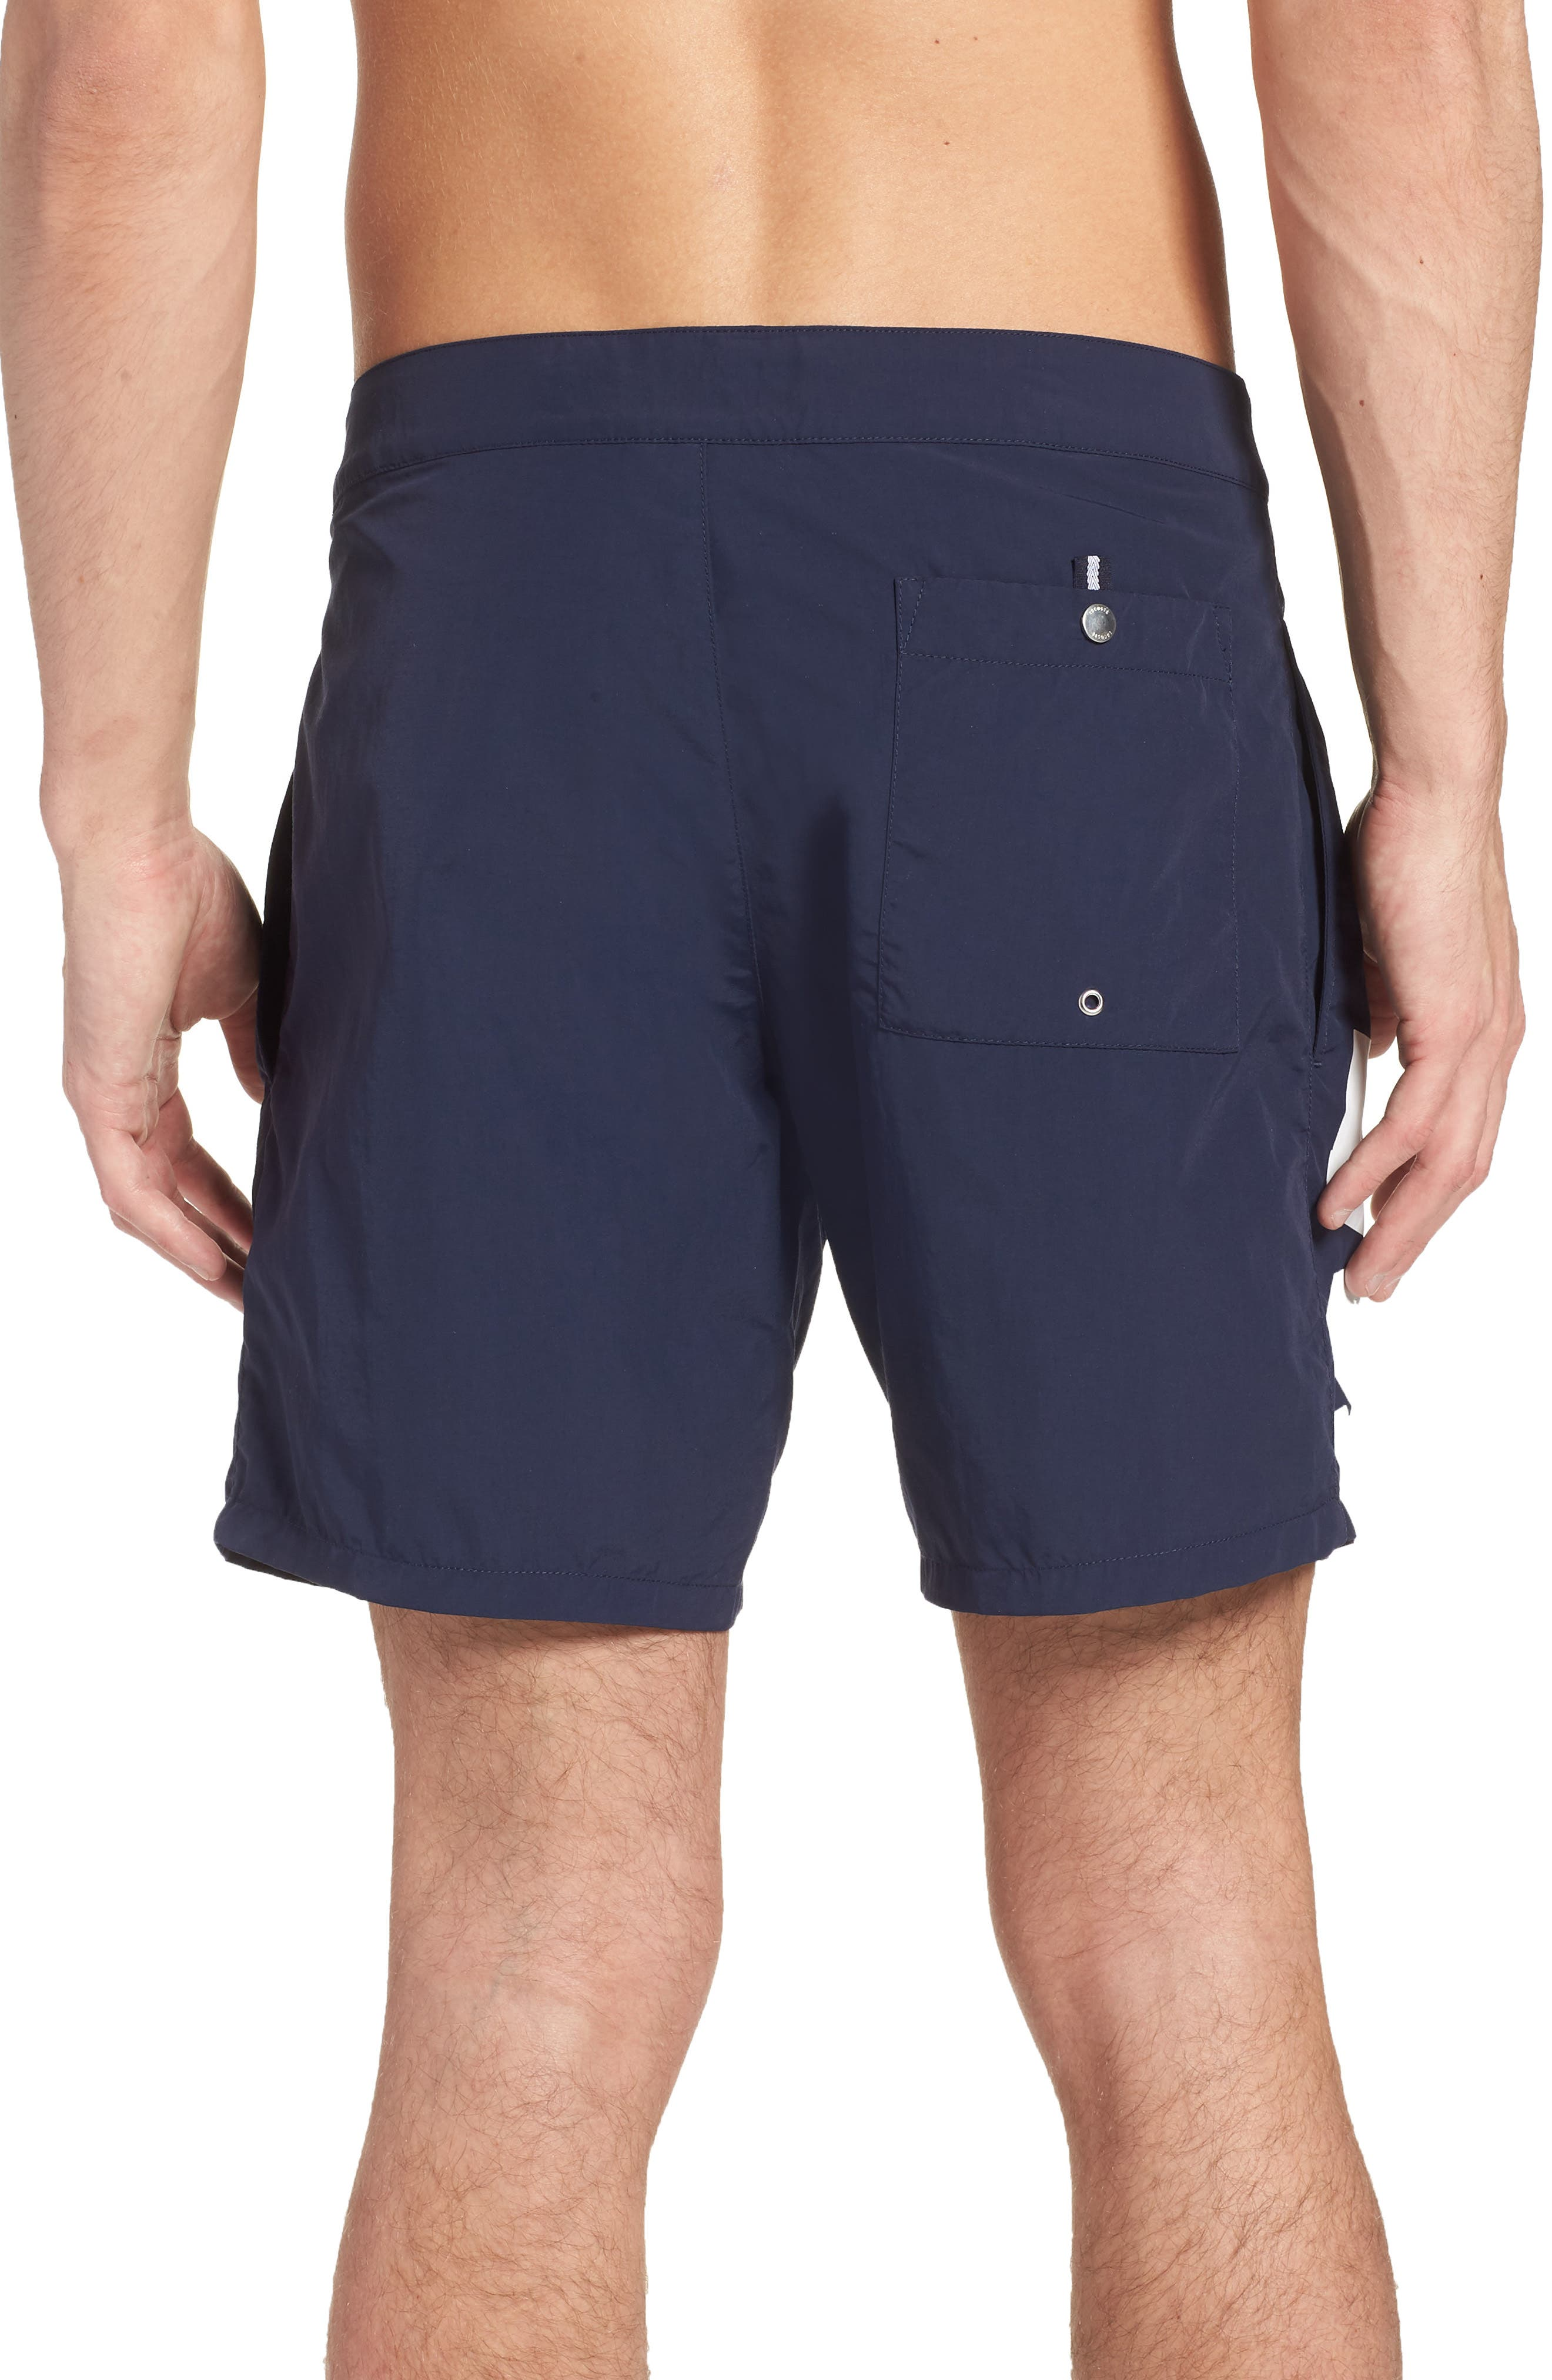 Graphic Swim Trunks,                             Alternate thumbnail 2, color,                             410